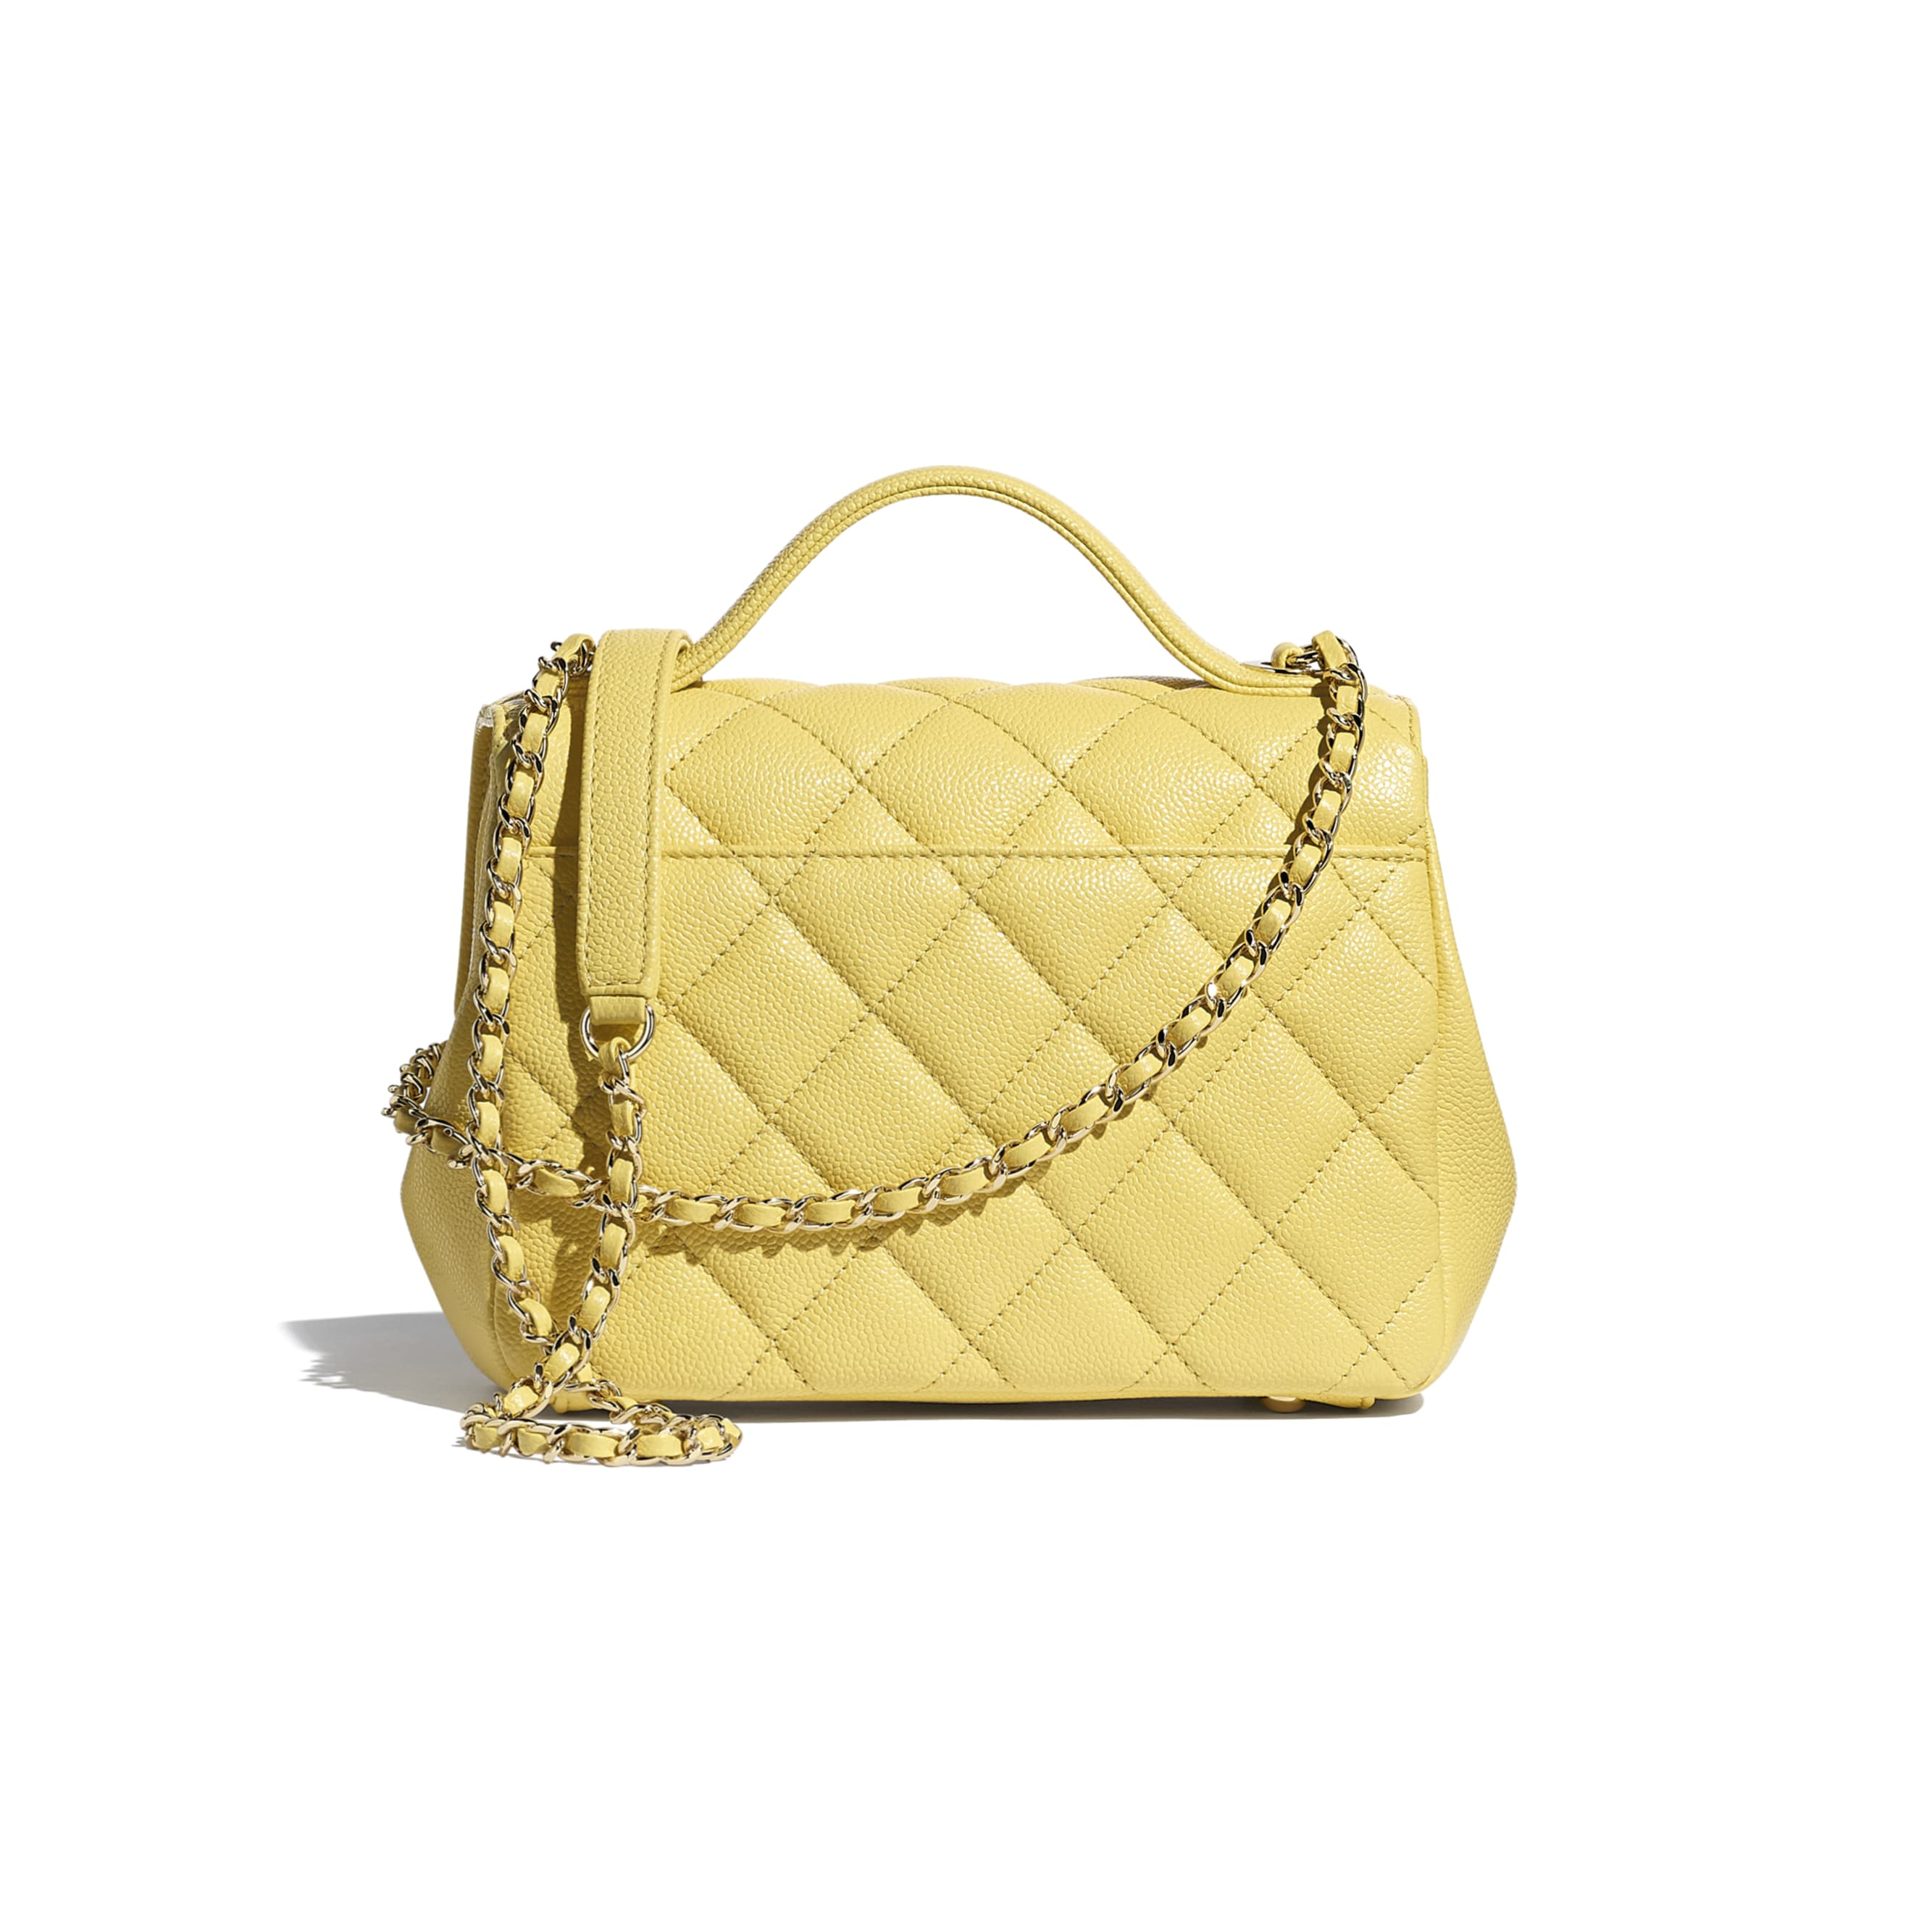 Small Flap Bag With Top Handle - Yellow - Grained Calfskin & Gold-Tone Metal - CHANEL - Alternative view - see standard sized version